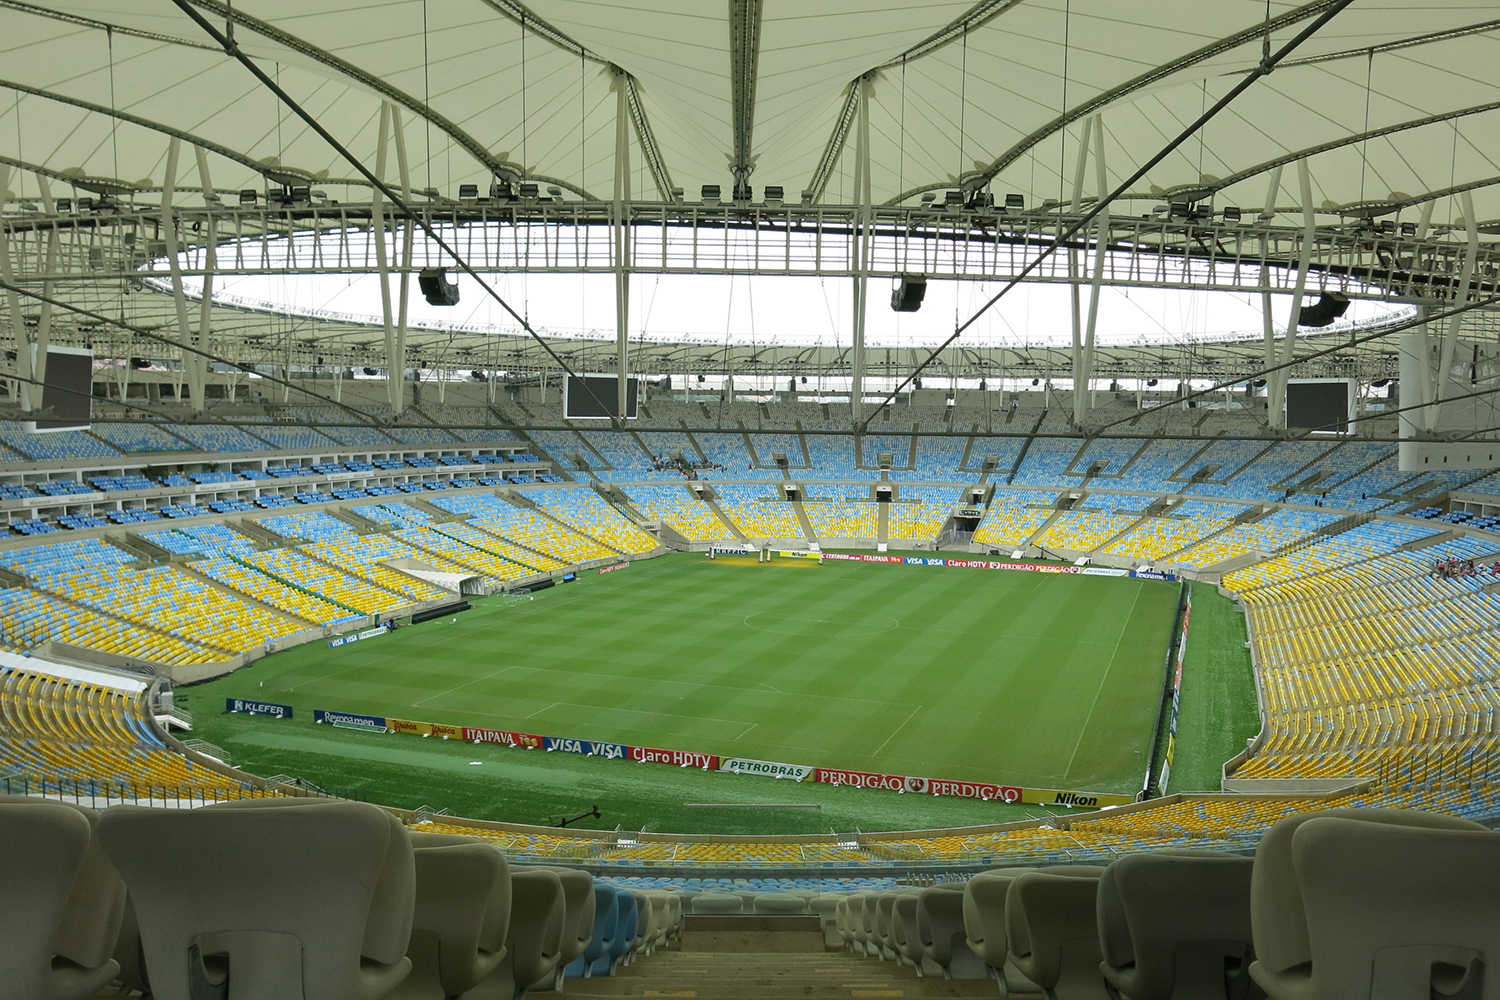 Maracana Stadium in Rio de Janeiro, Brazil. One of the biggest soccer stadiums in the world, home of the 2014 Olympic Games and World Cup. WSDG was called for consulting and installation of the audio/video of the whole facility.